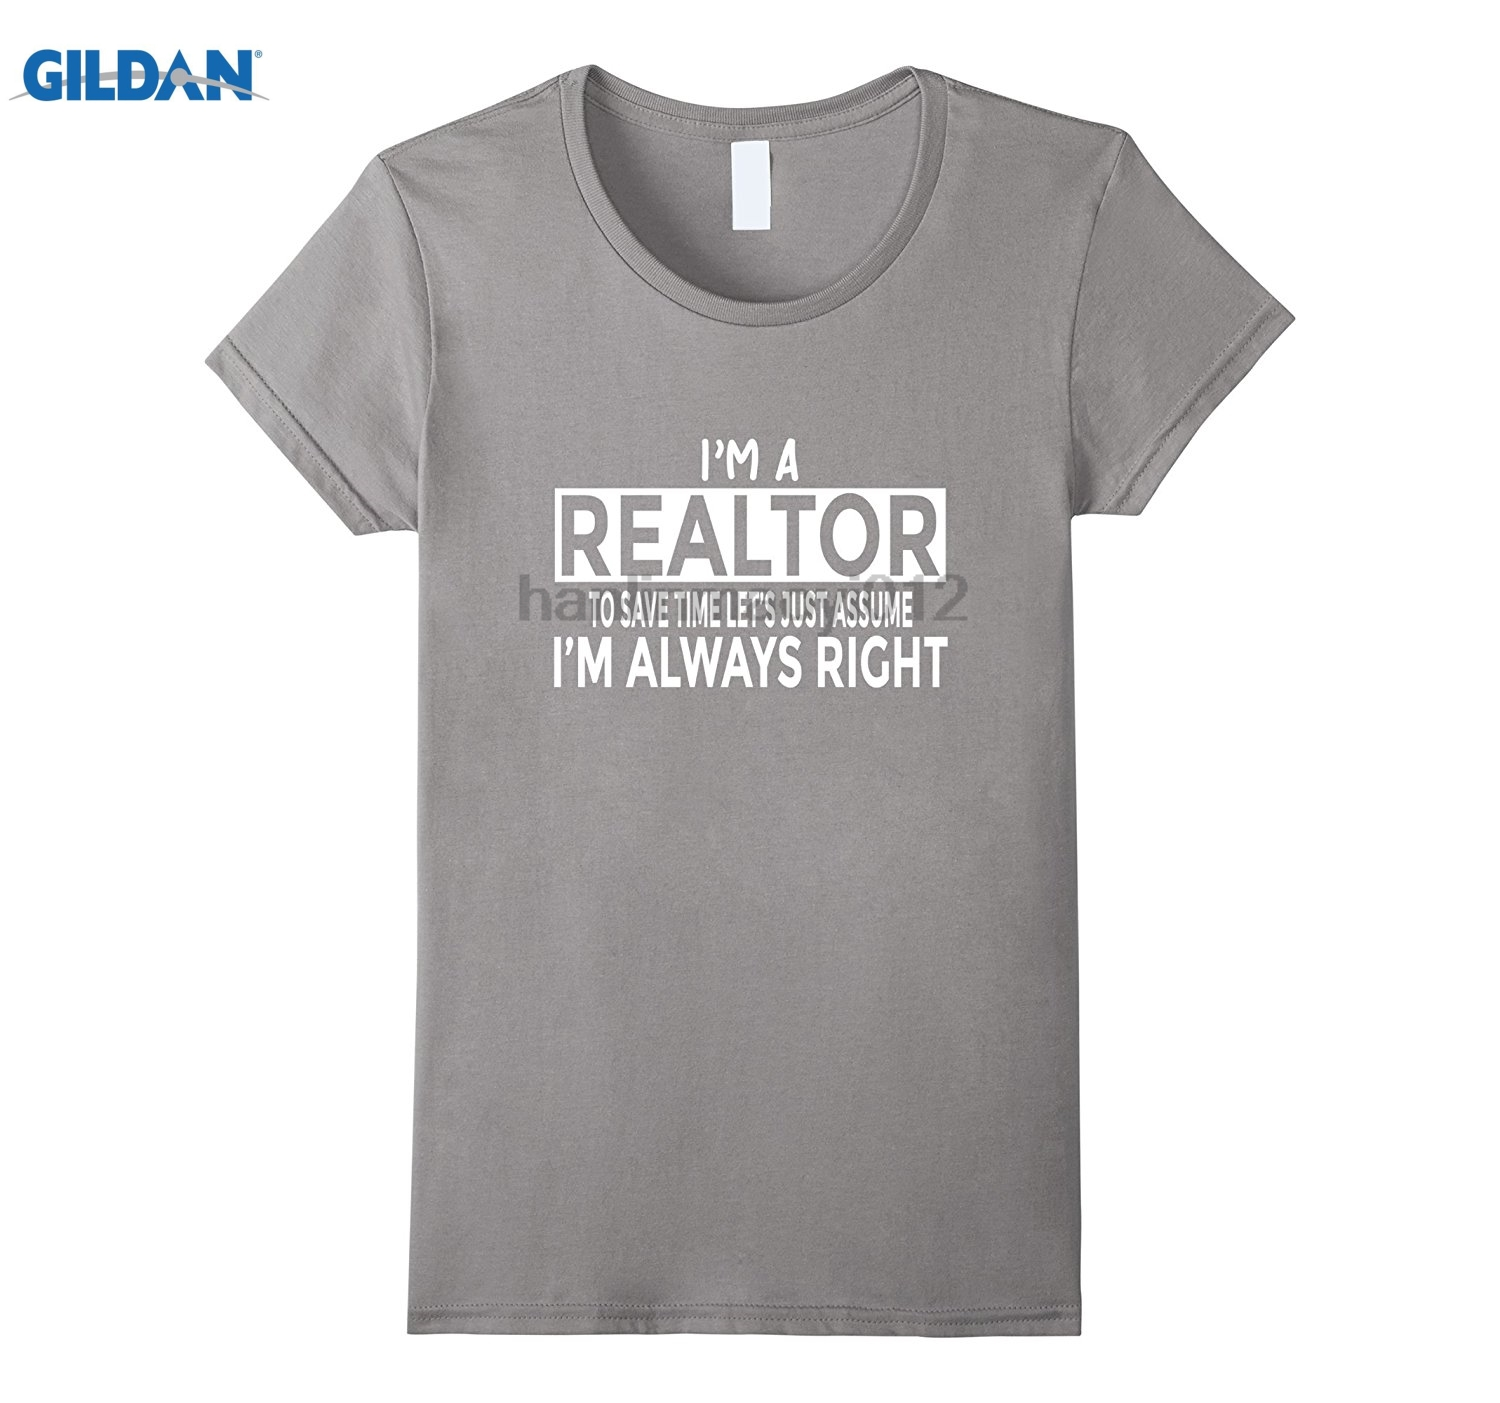 GILDAN Funny Real Estate Agent T-Shirt Just Assume Im Always Right Printed T-shirt glasses Womens T-shirt